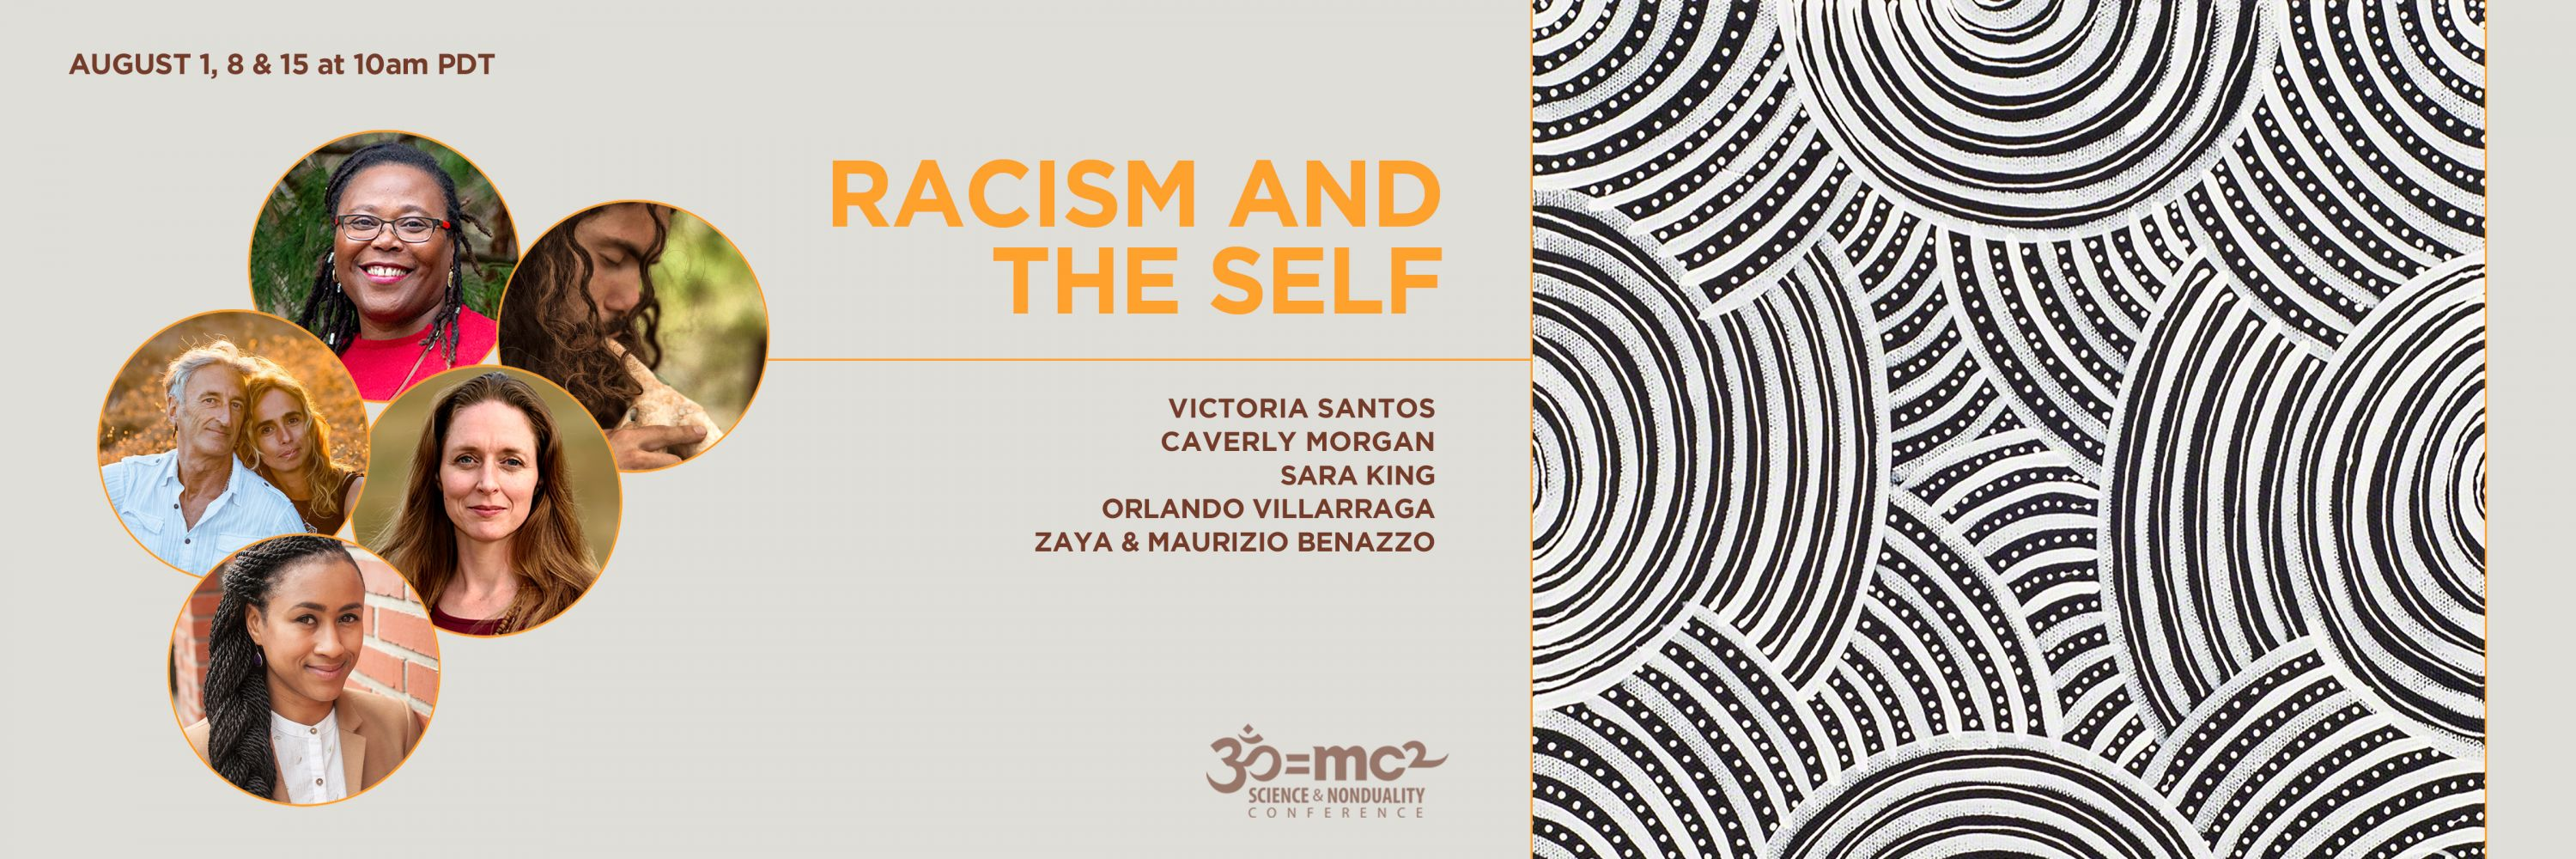 Racism and the Self